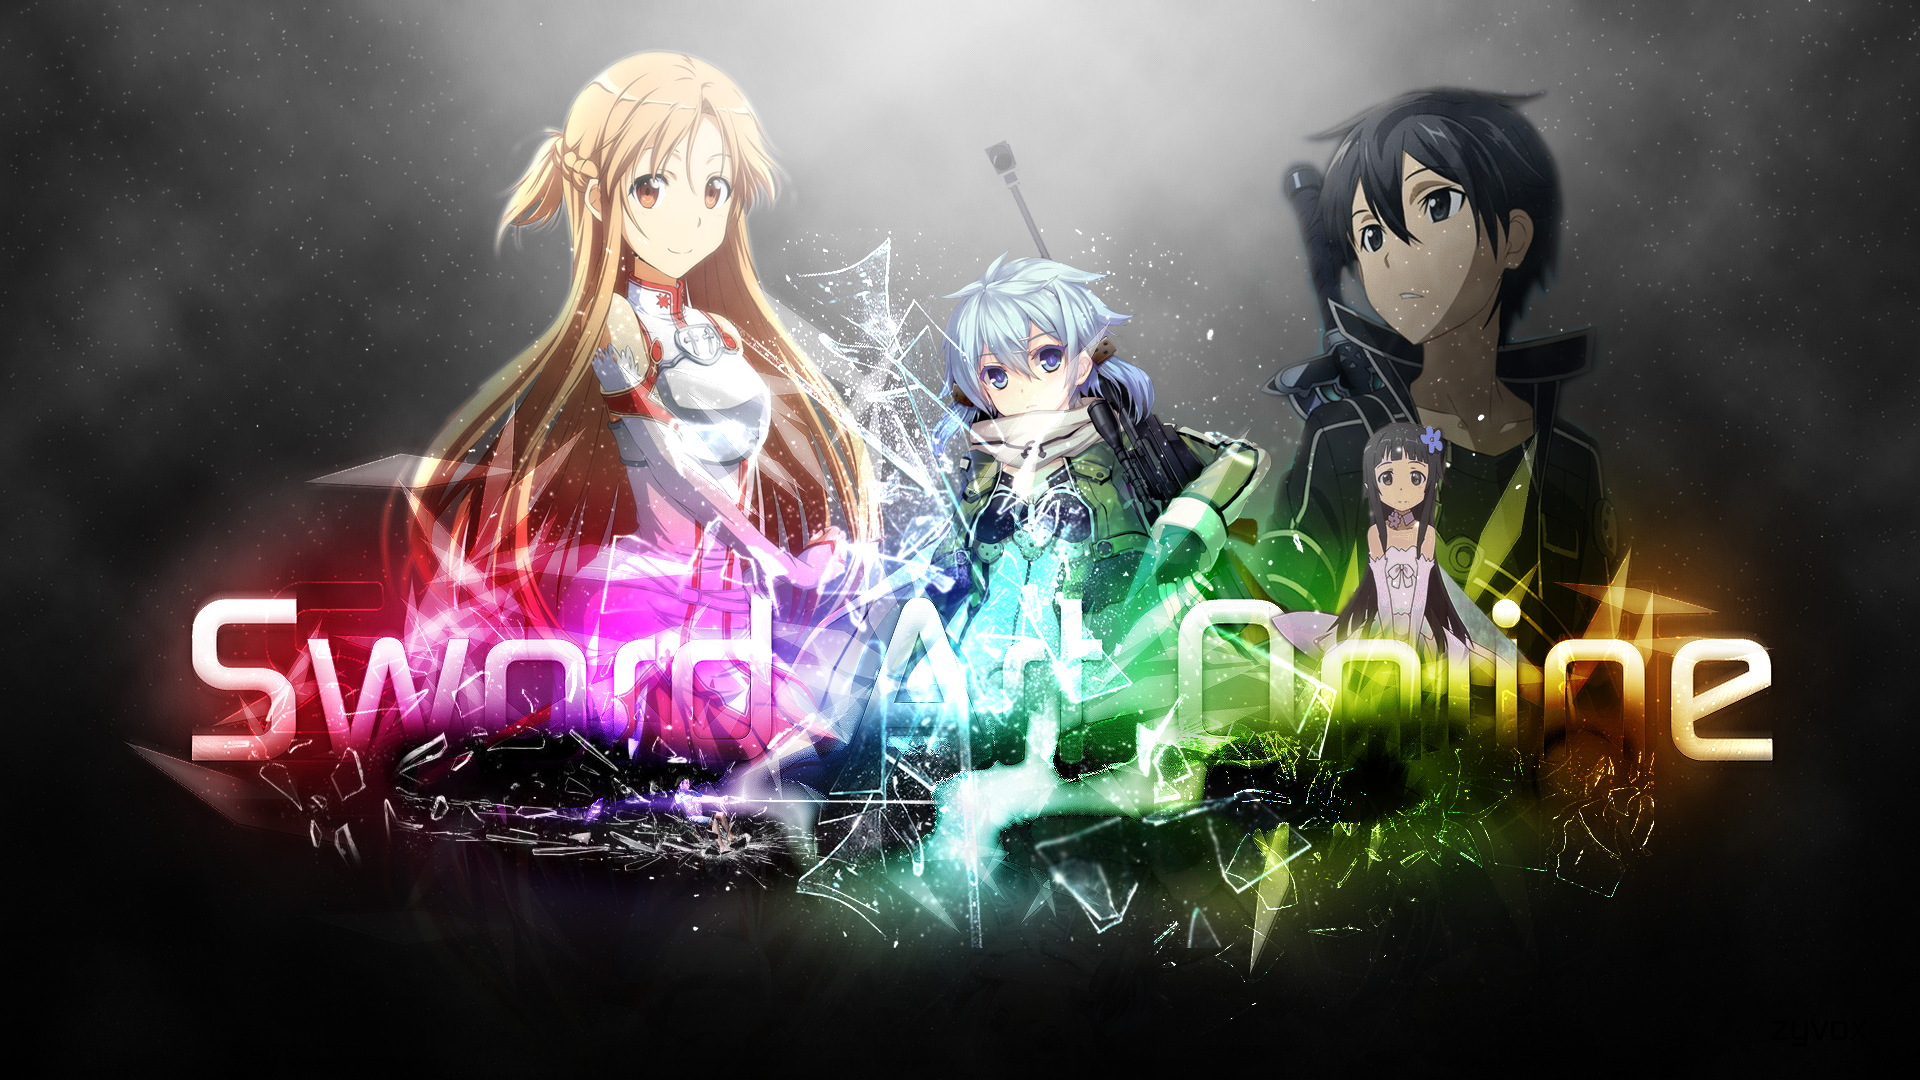 Sword Art Online Movie Ordinal Scale Ful 1025882 Png Images Pngio